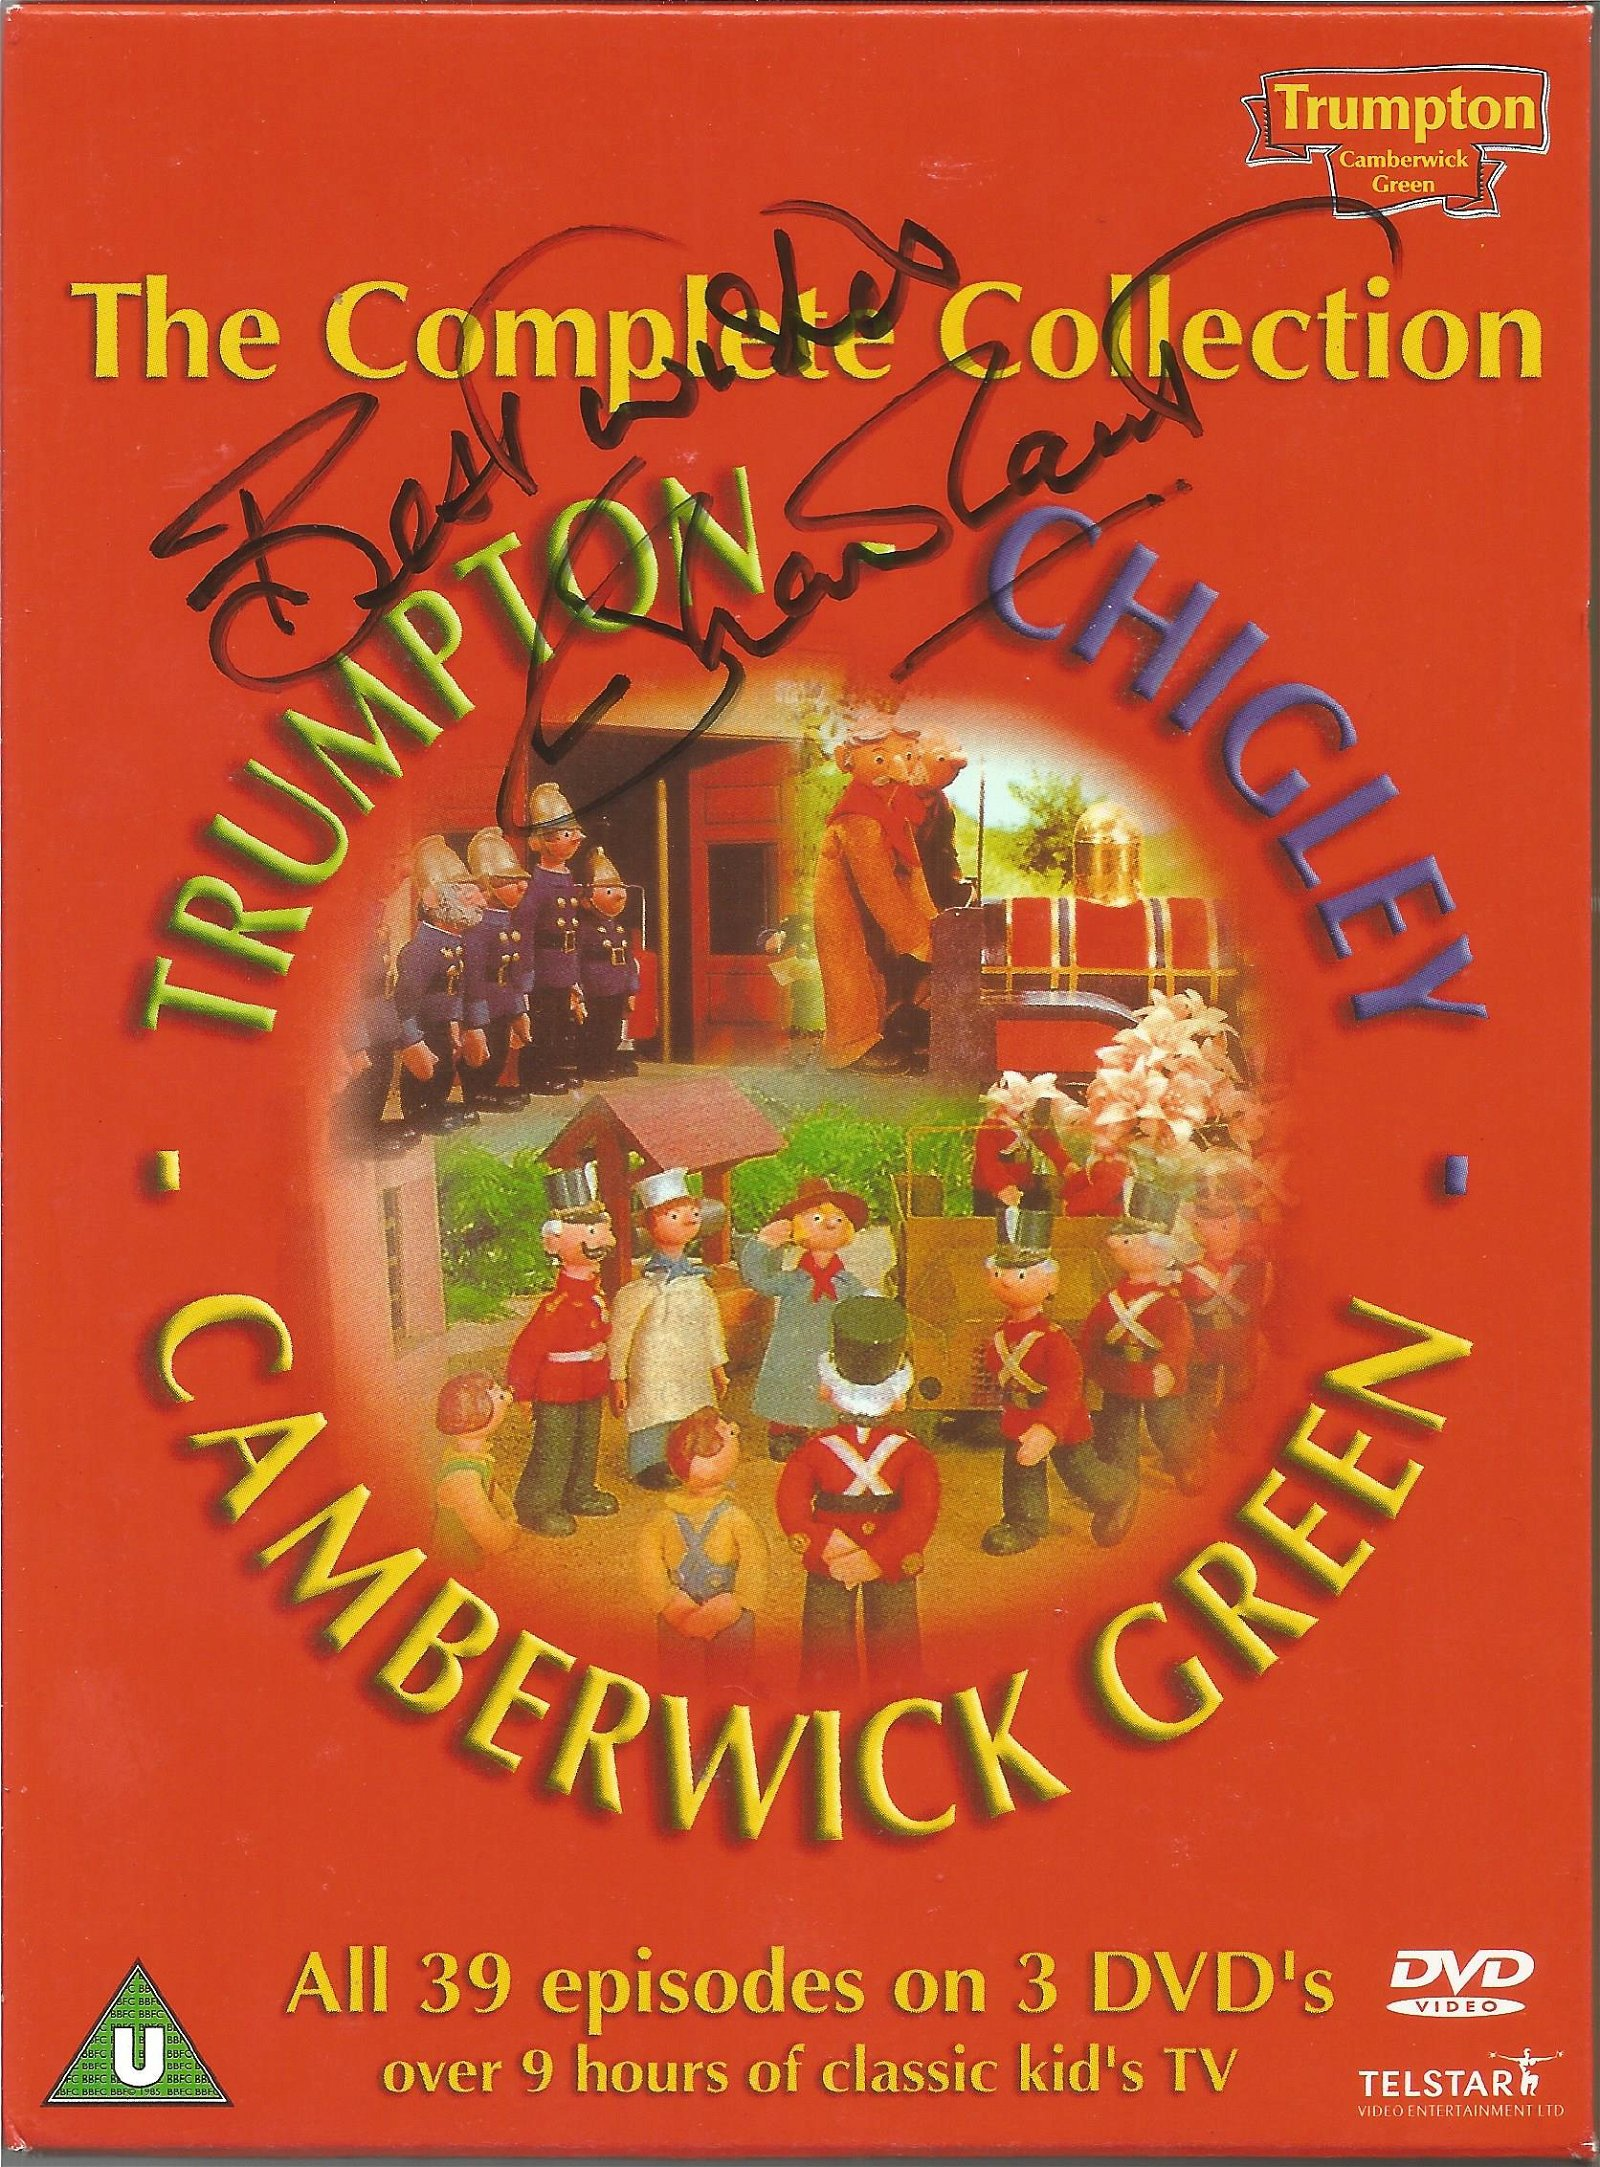 Trumpton, Chigley and Camberwick Green DVD collection